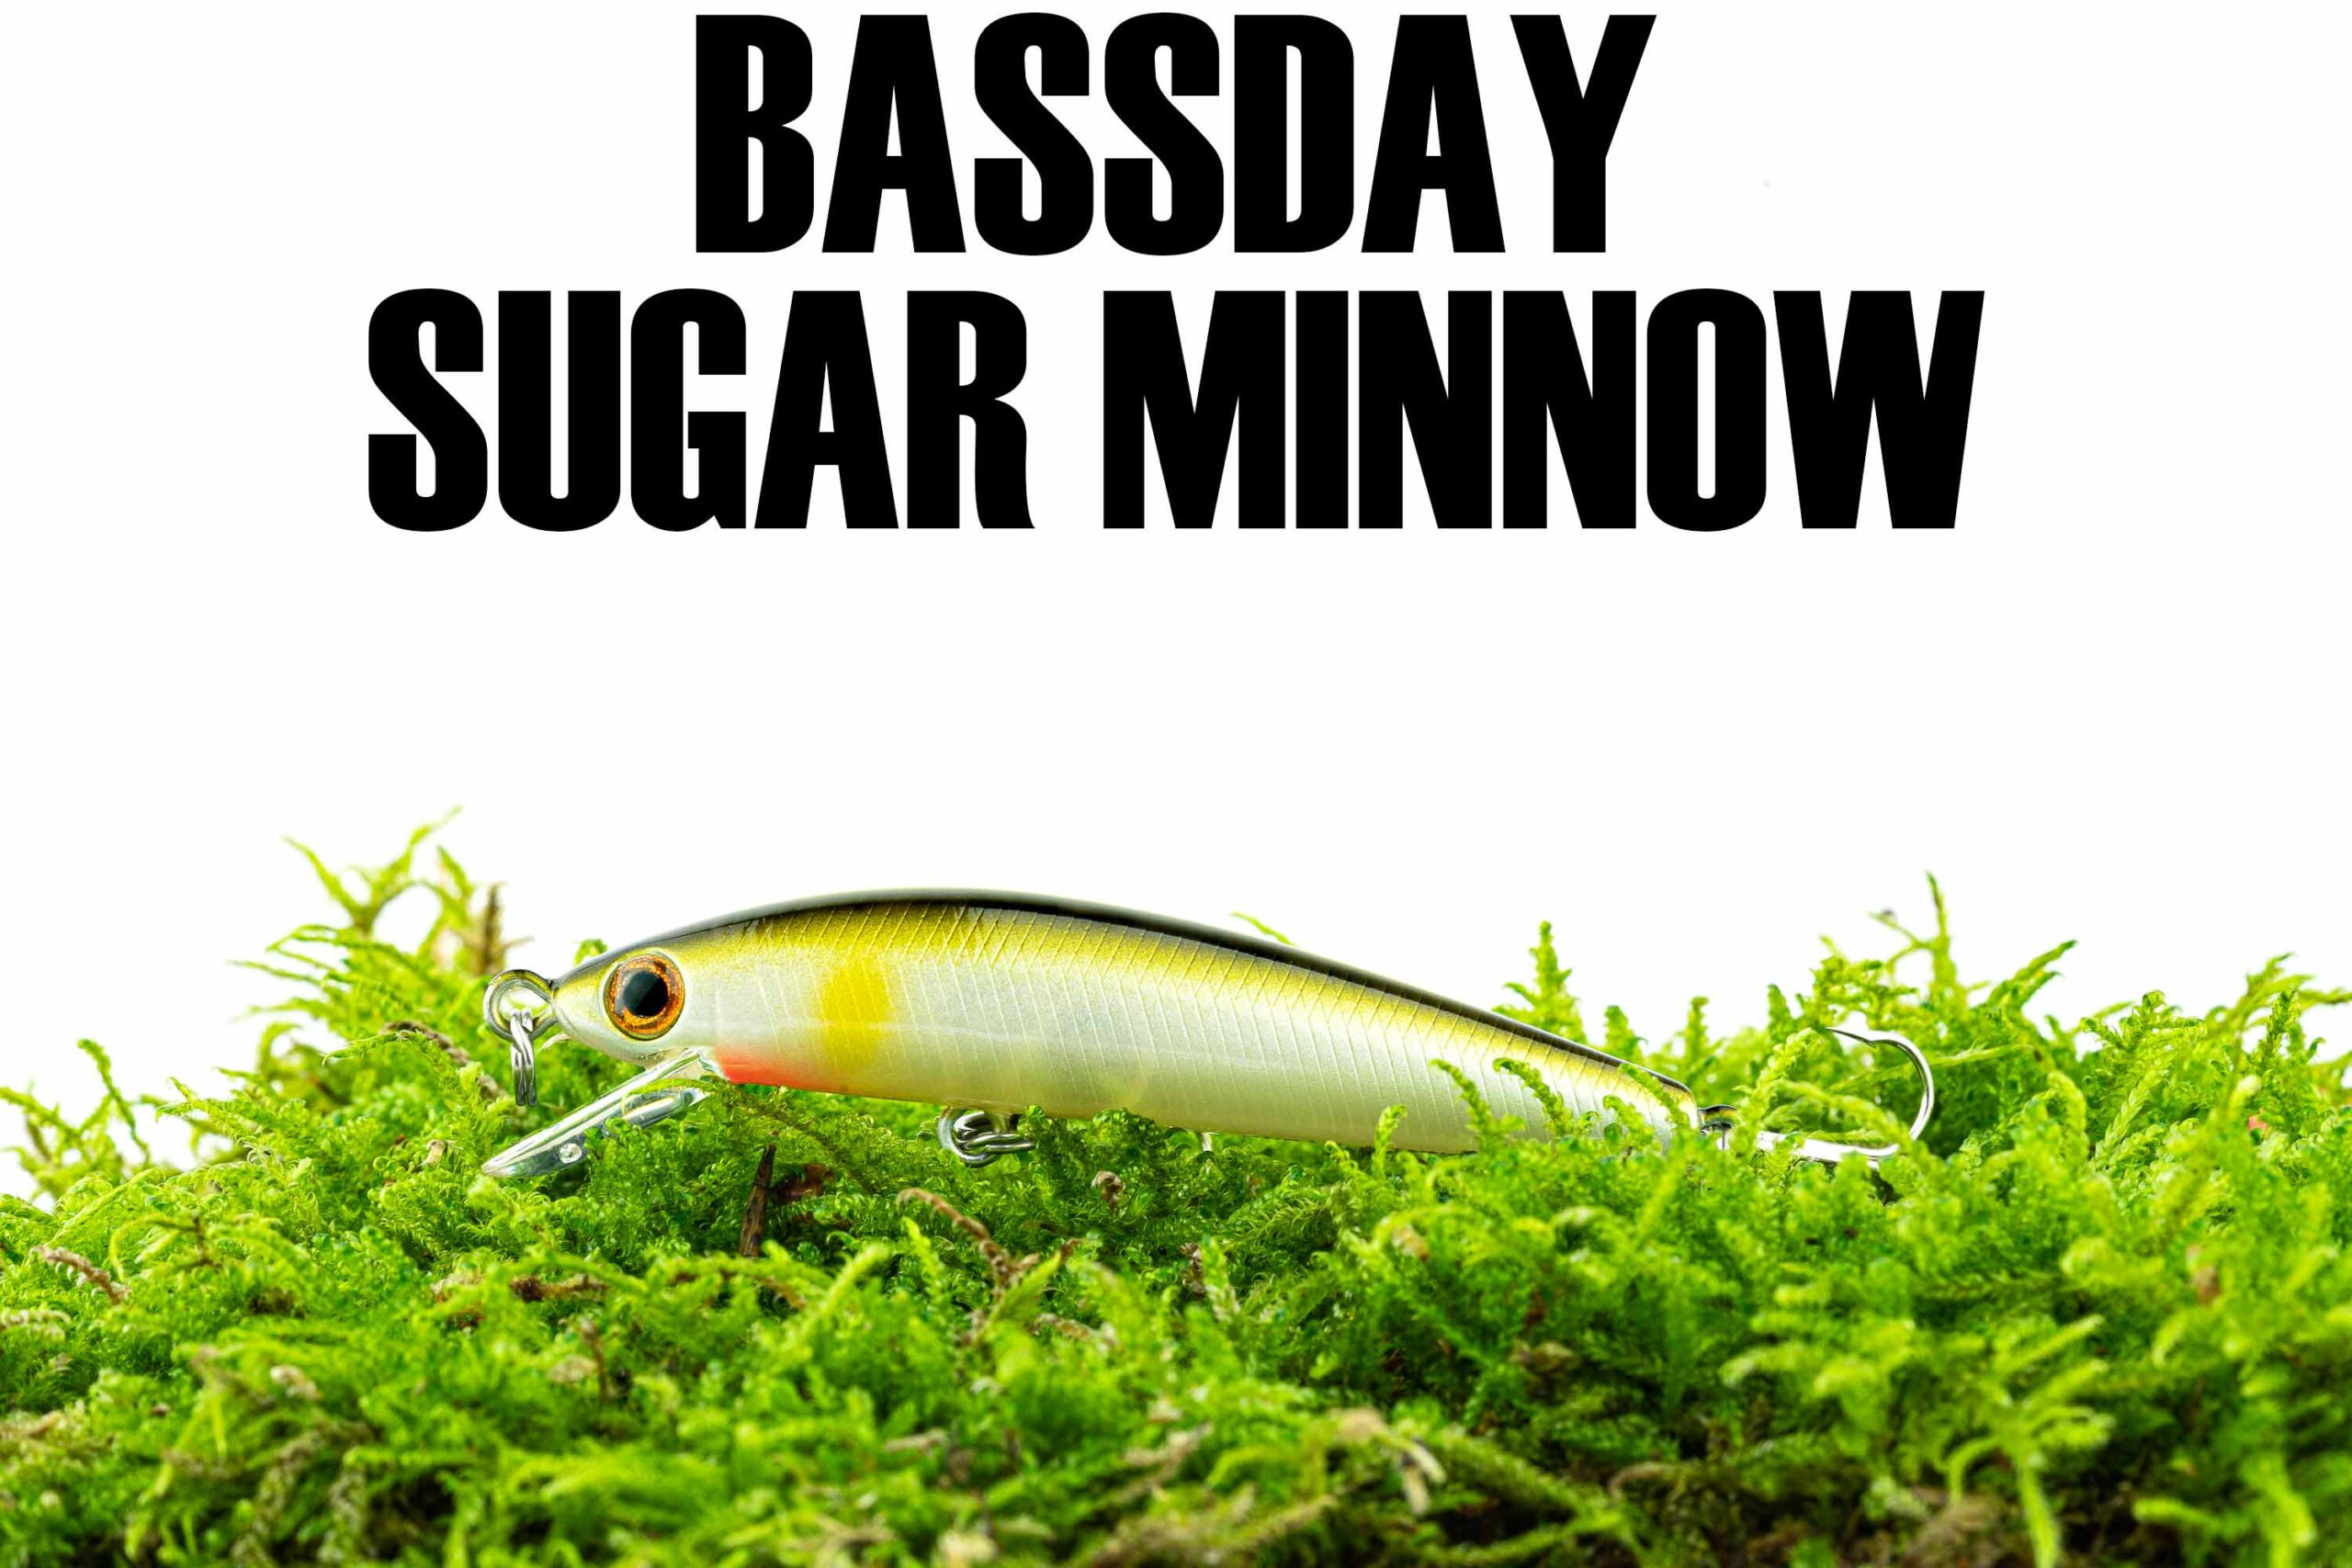 Bassday Sugar Minnow